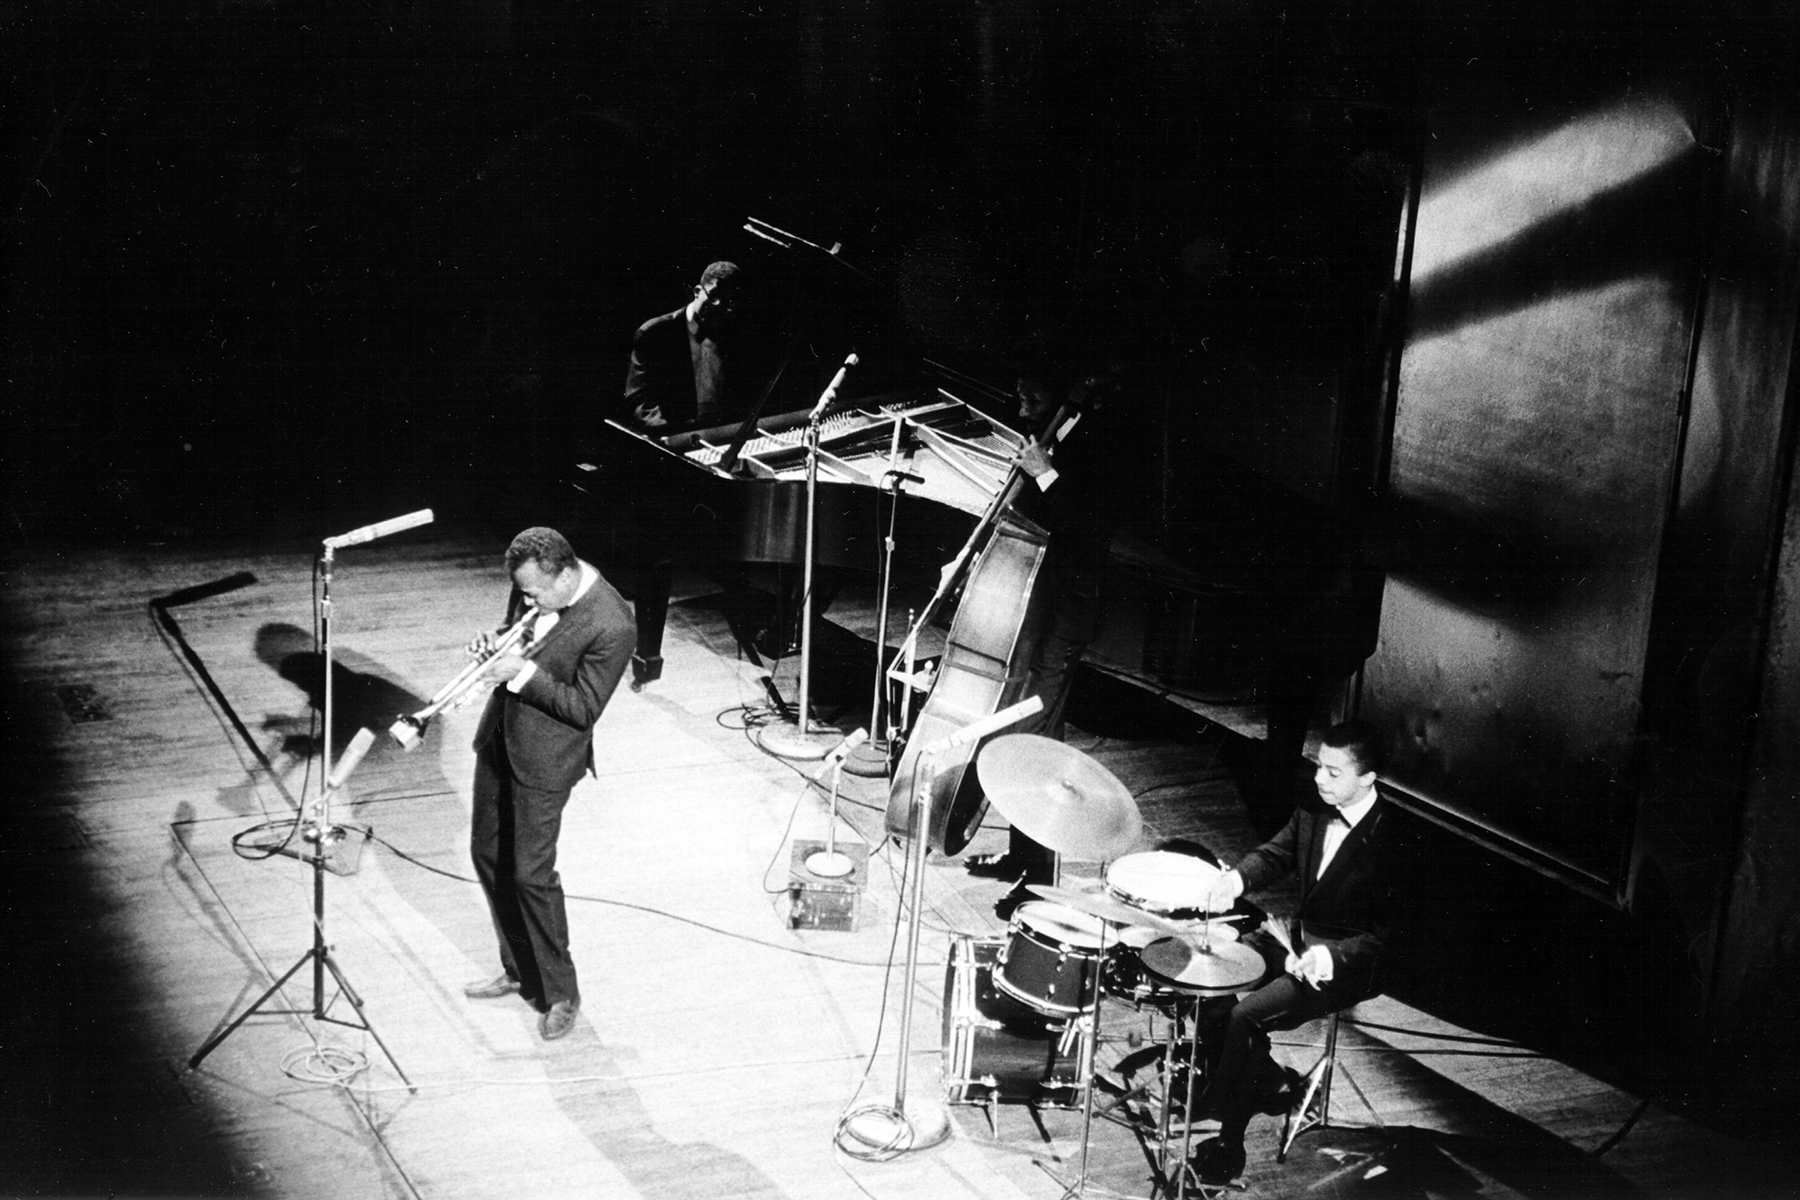 CIRCA 1964: (L-R) Jazz trumpeter Miles Davis, pianist Herbie Hancock, bassist Ron Carter and drummer Tony Williams perform onstage in circa 1964. (Photo by Michael Ochs Archives/Getty Images)